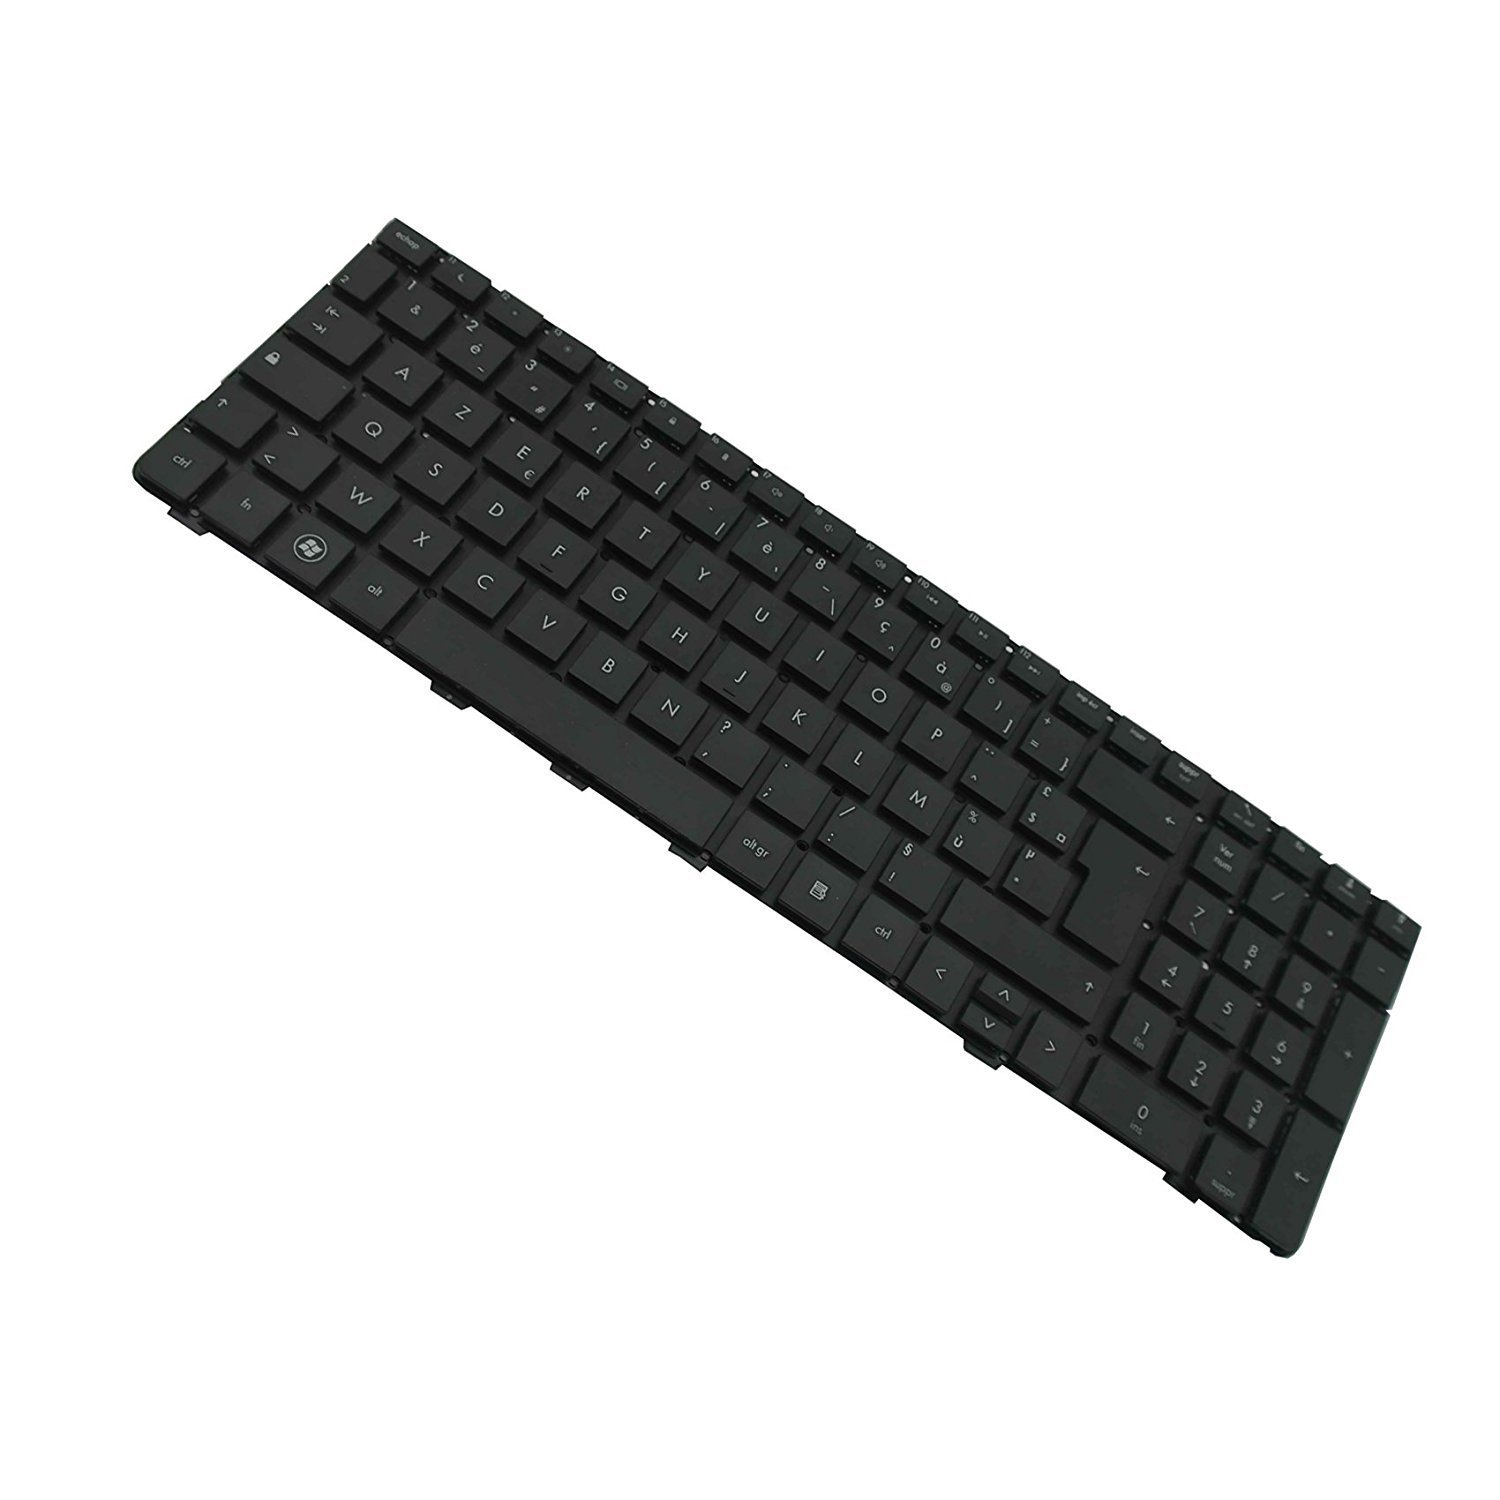 YEECHUN Black FR French AZERTY Keyboard France Clavier For HP Probook 4535S 4530S 4730S Series New Notebook Replacement Accessories